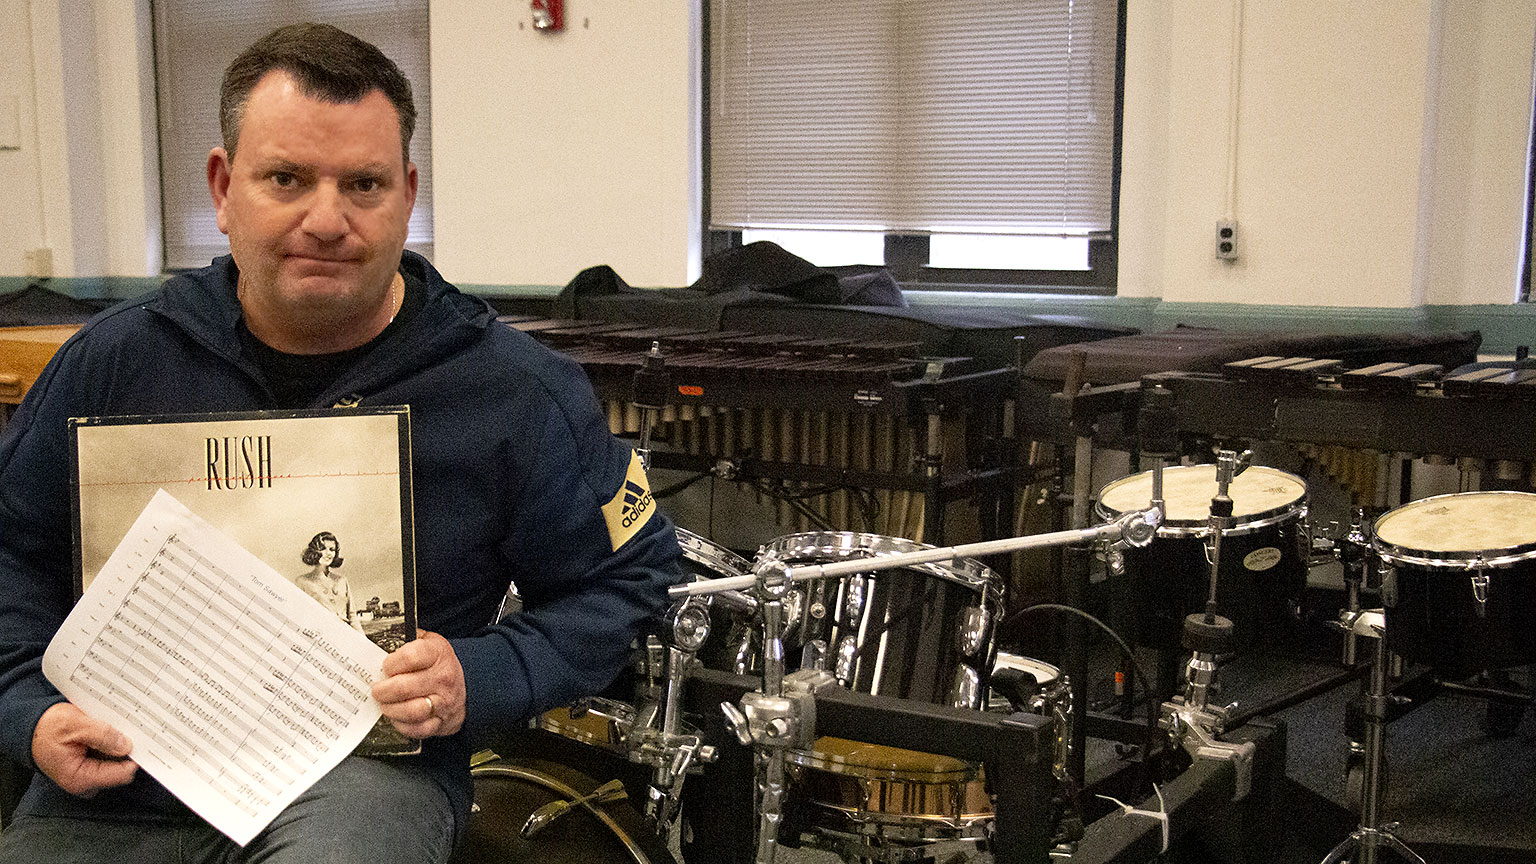 Chris Moore sits in the band room at Georgia Tech holding the sheet music to Tom Sawyer and his vinyl album of Rush's Permanent Waves.